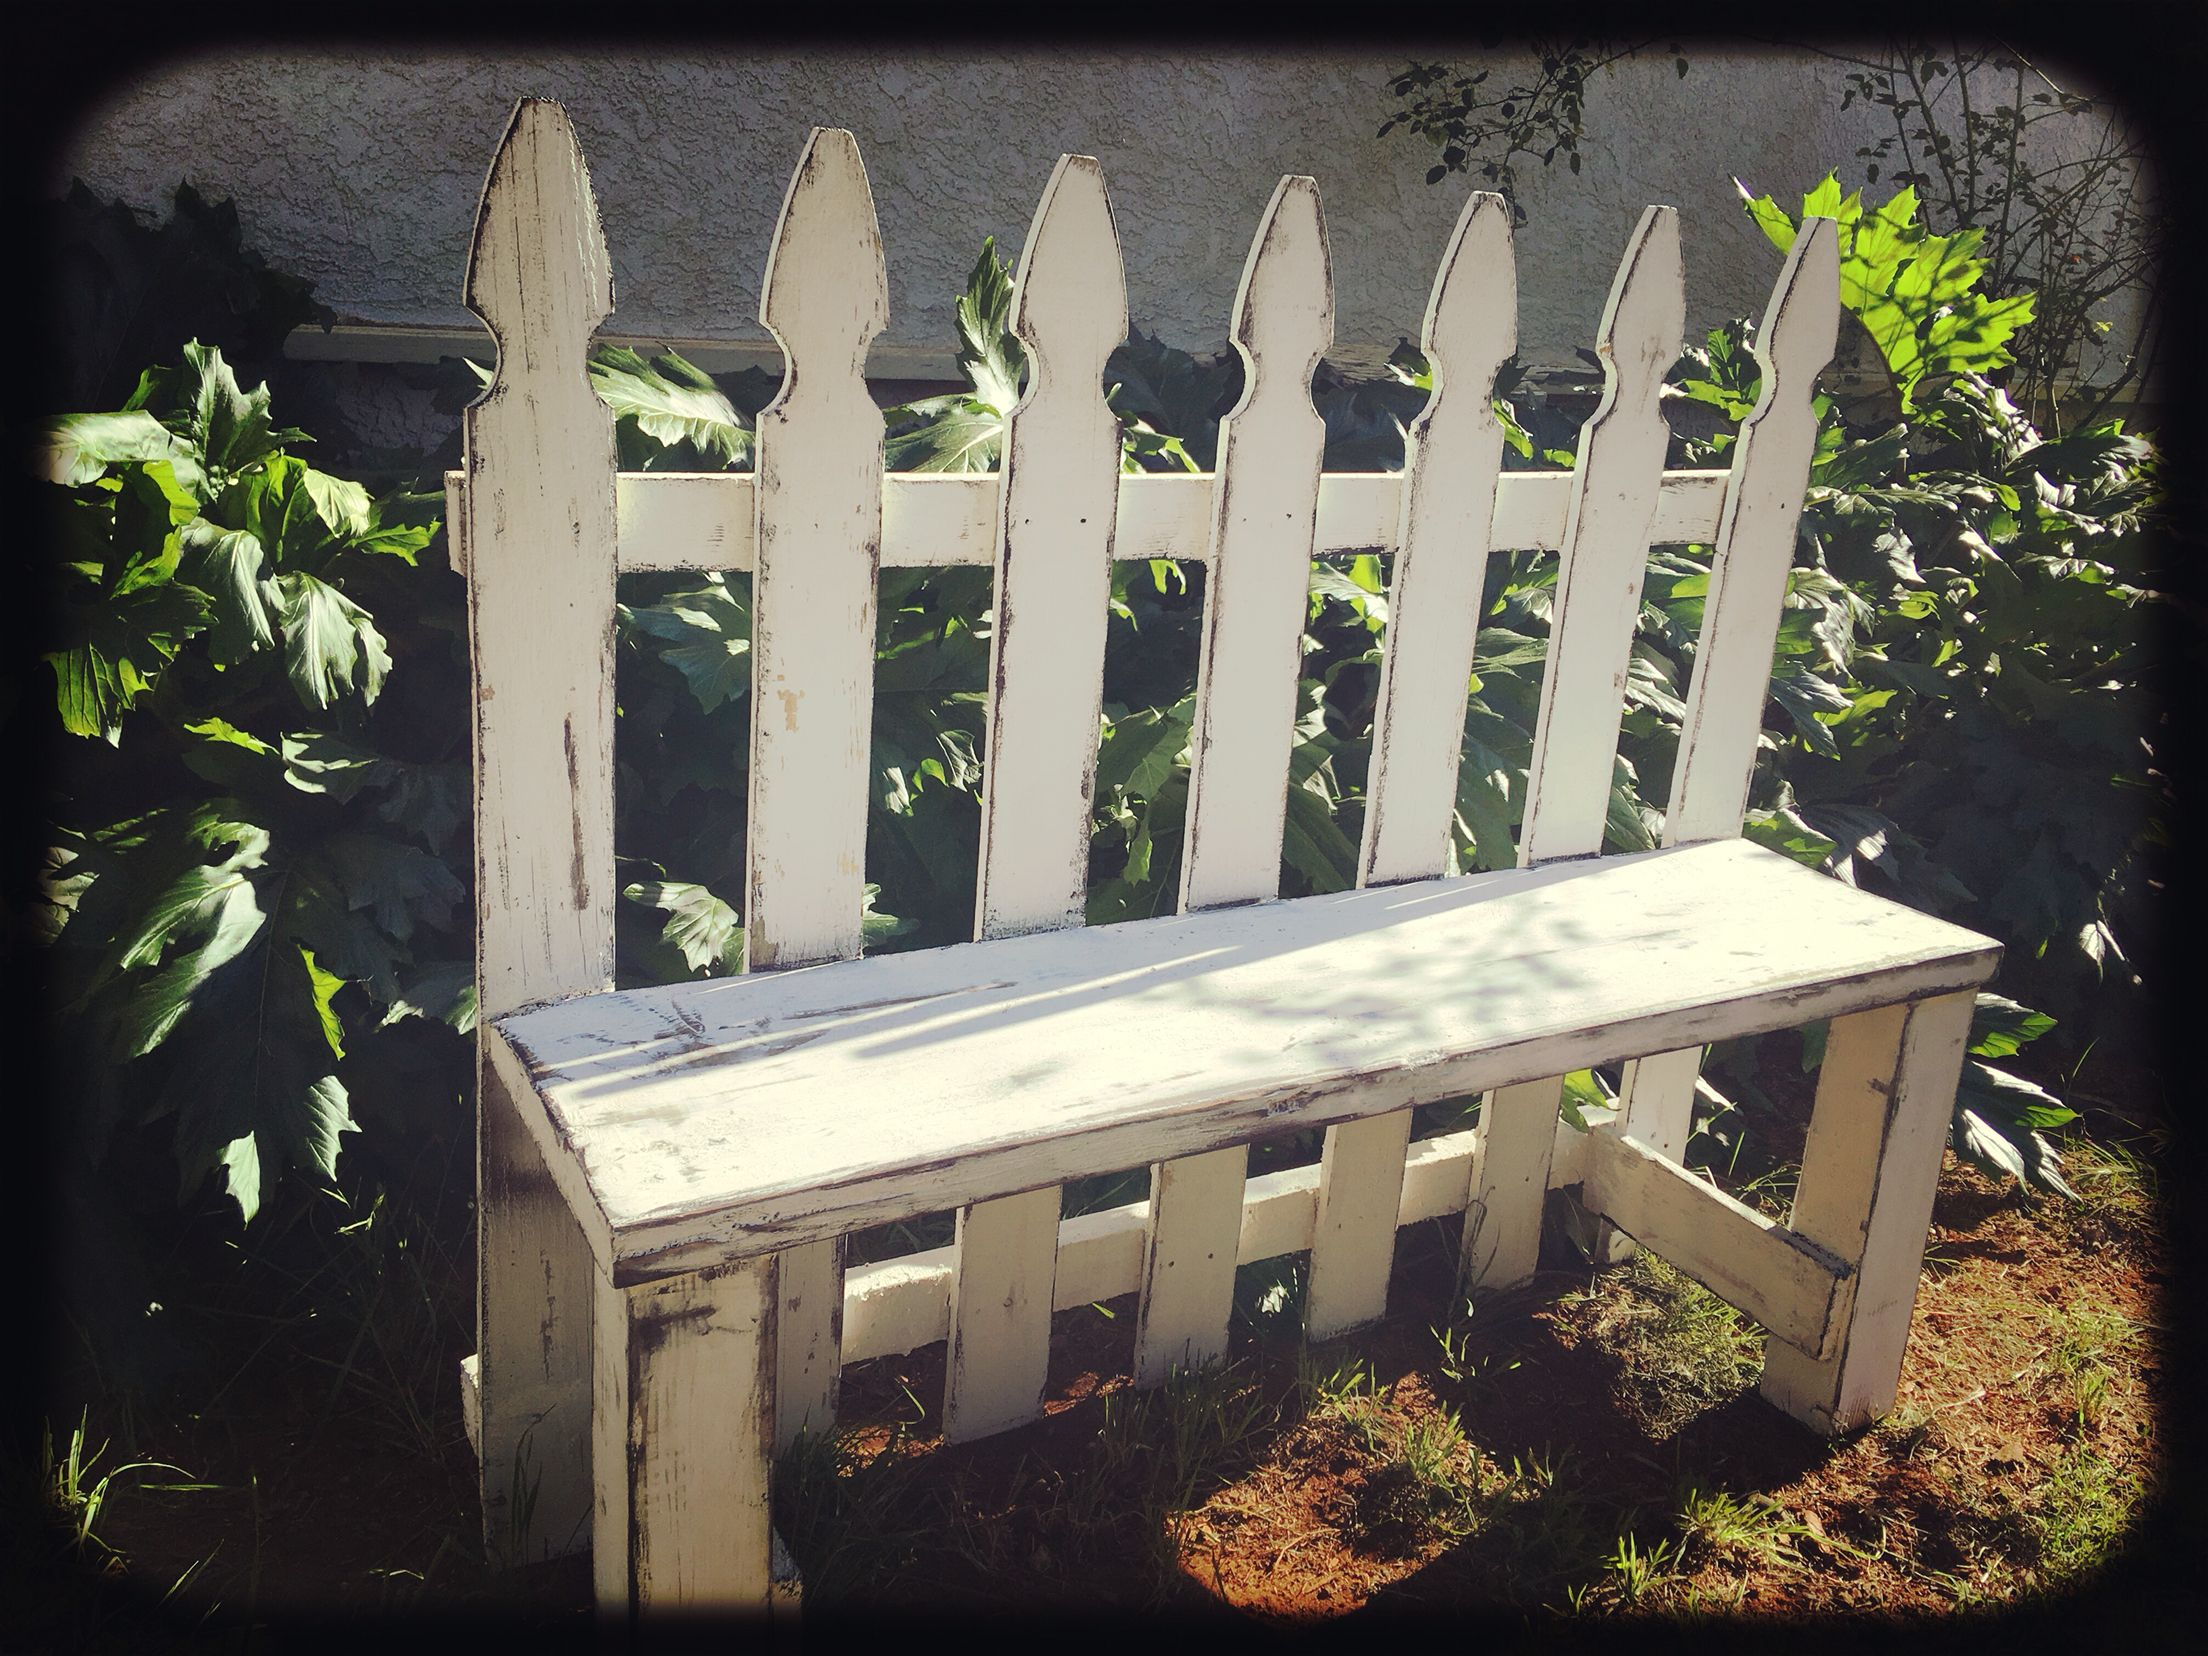 Gorgeous Upcycled Distressed White Picket Fence Garden Bench From Angry  Wood Design. Measuring 46 Long